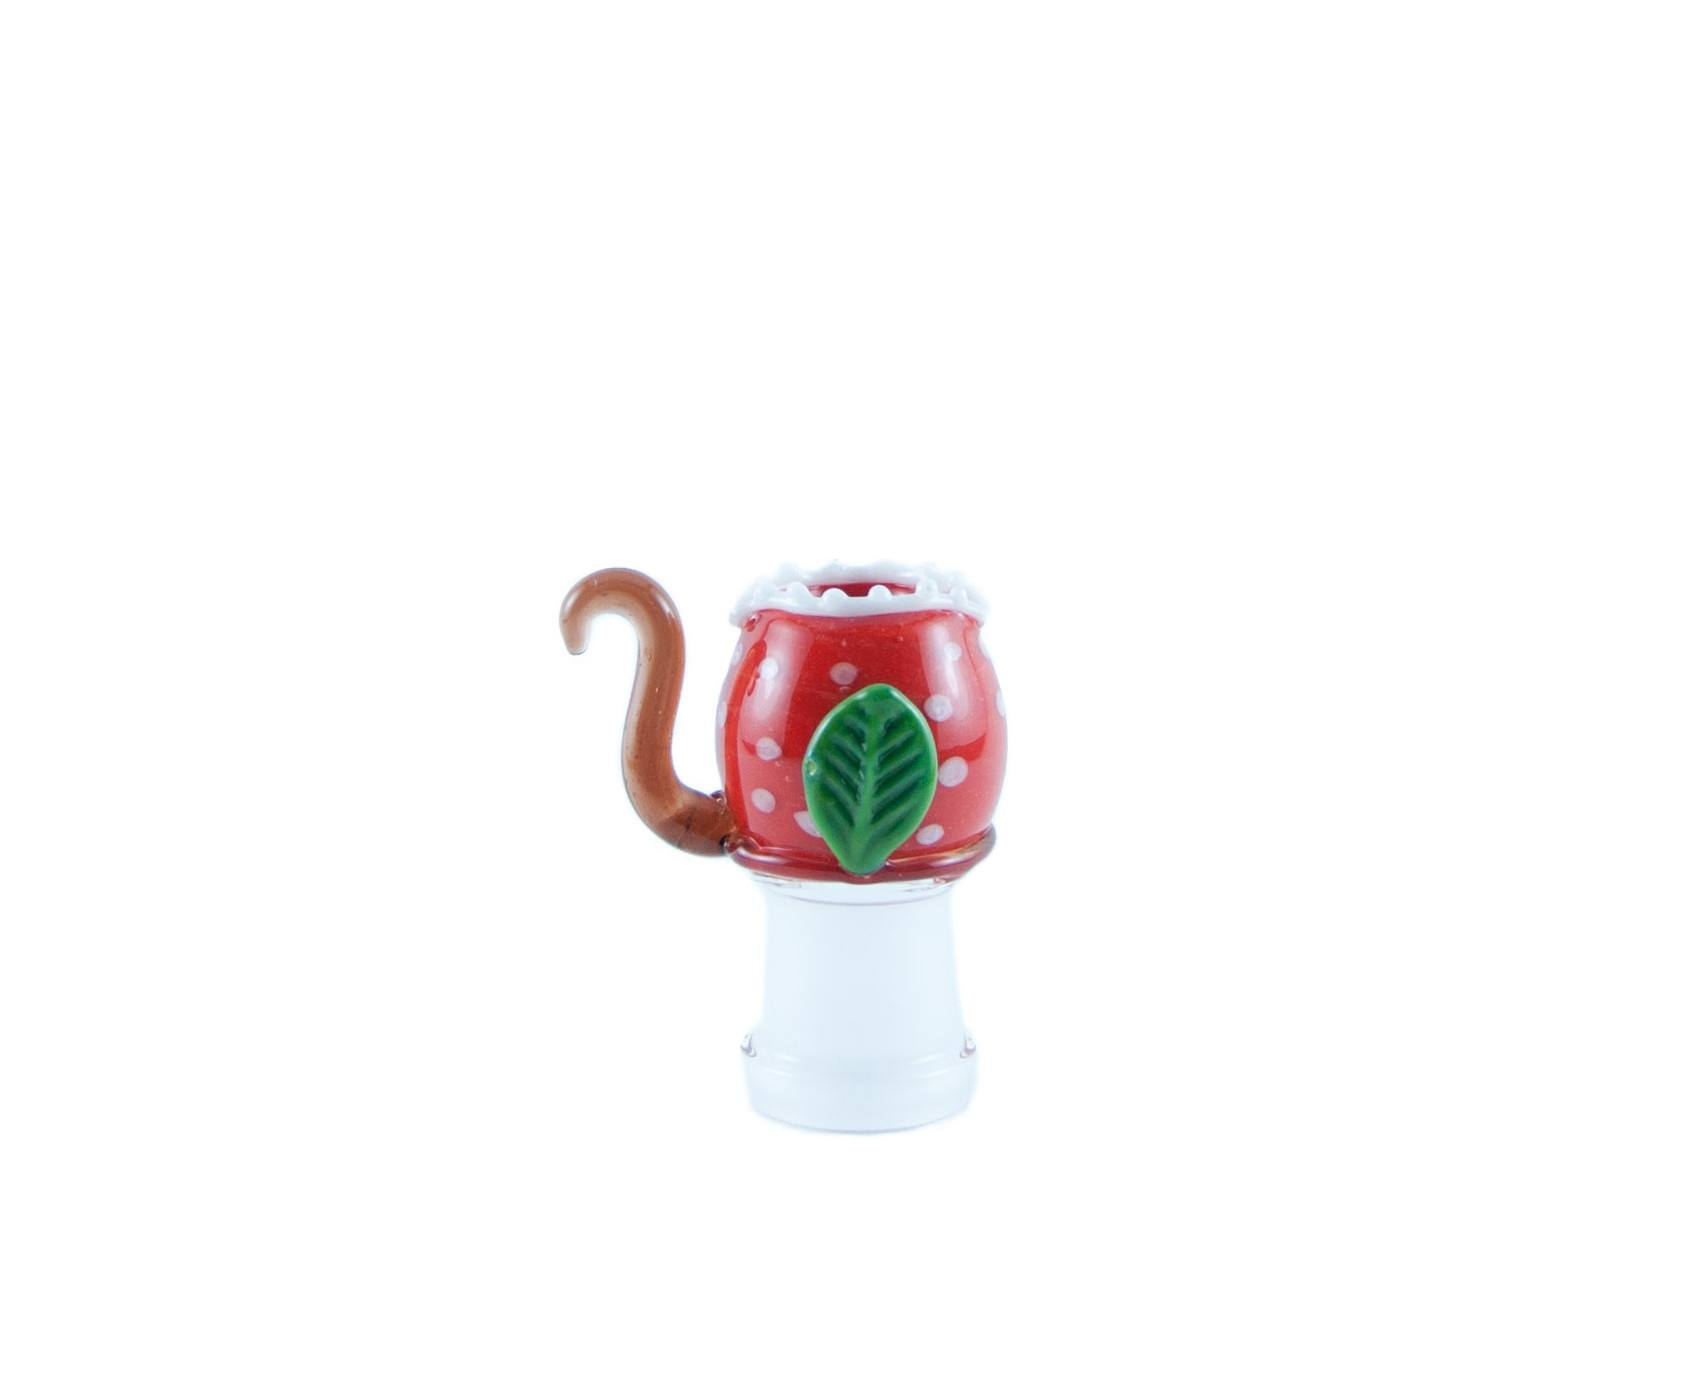 Empire Glassworks - Mario Piranha Plant Oil Dome 14/18mm